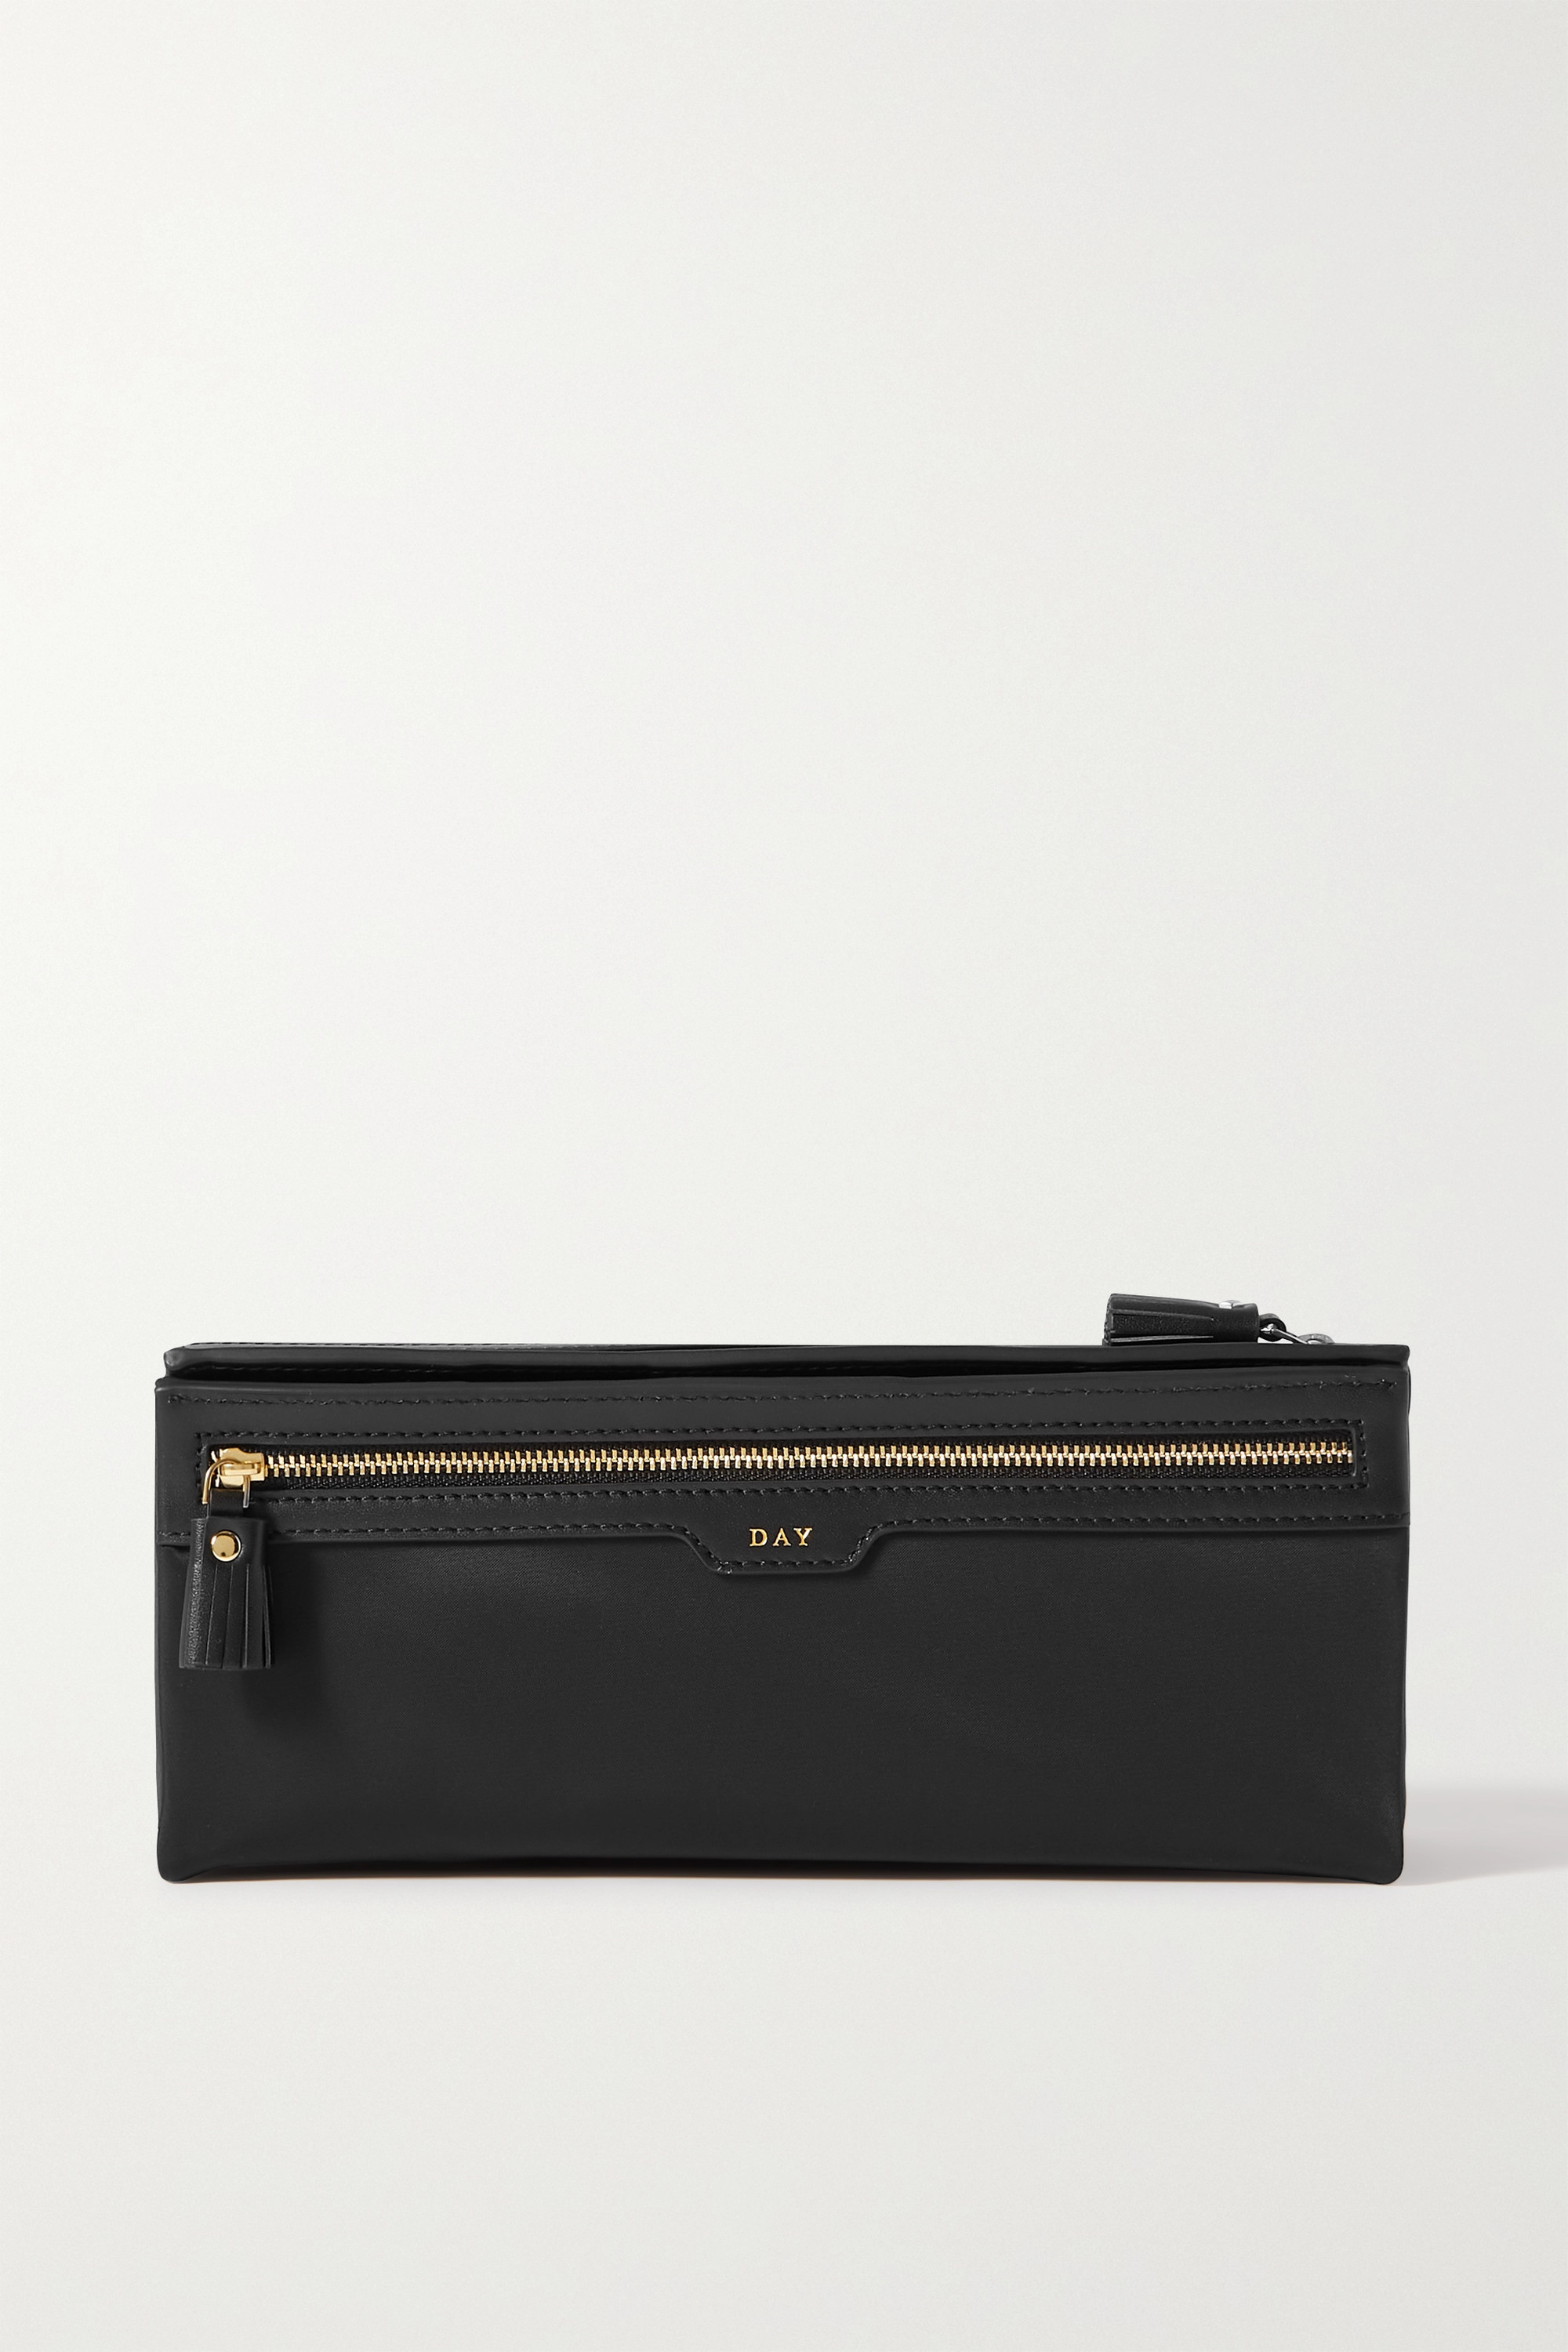 Anya Hindmarch Night and Day leather-trimmed recycled shell pouch